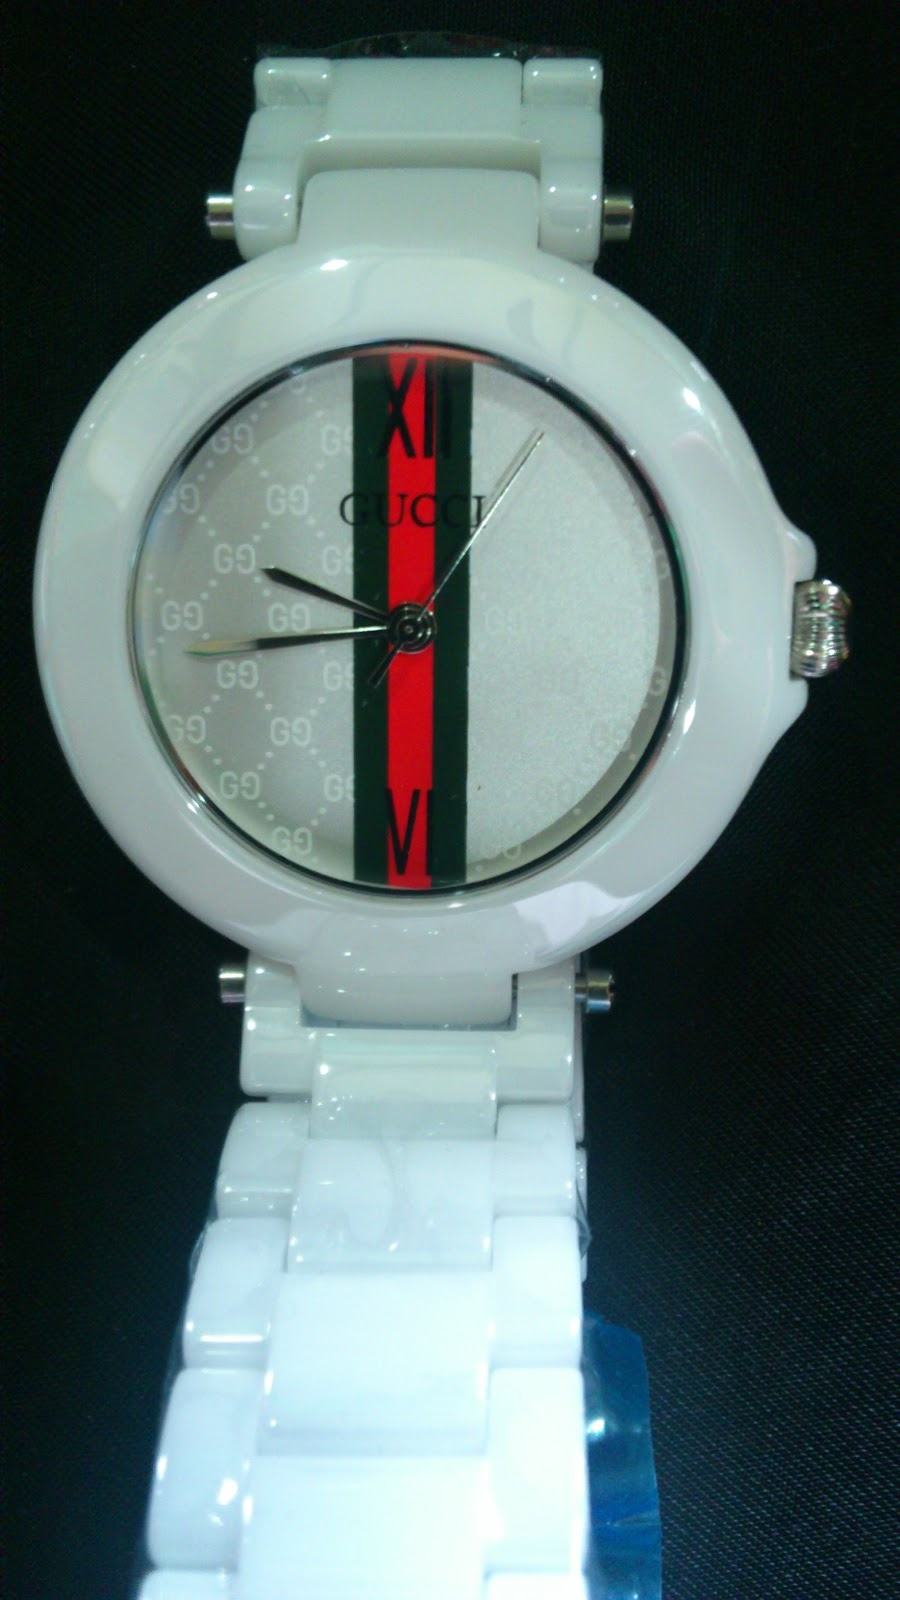 ea1145882ae New Gucci Sapphire Crystal Ceramic Quartz Mens Watch White 666. These photo  is taken from actual item